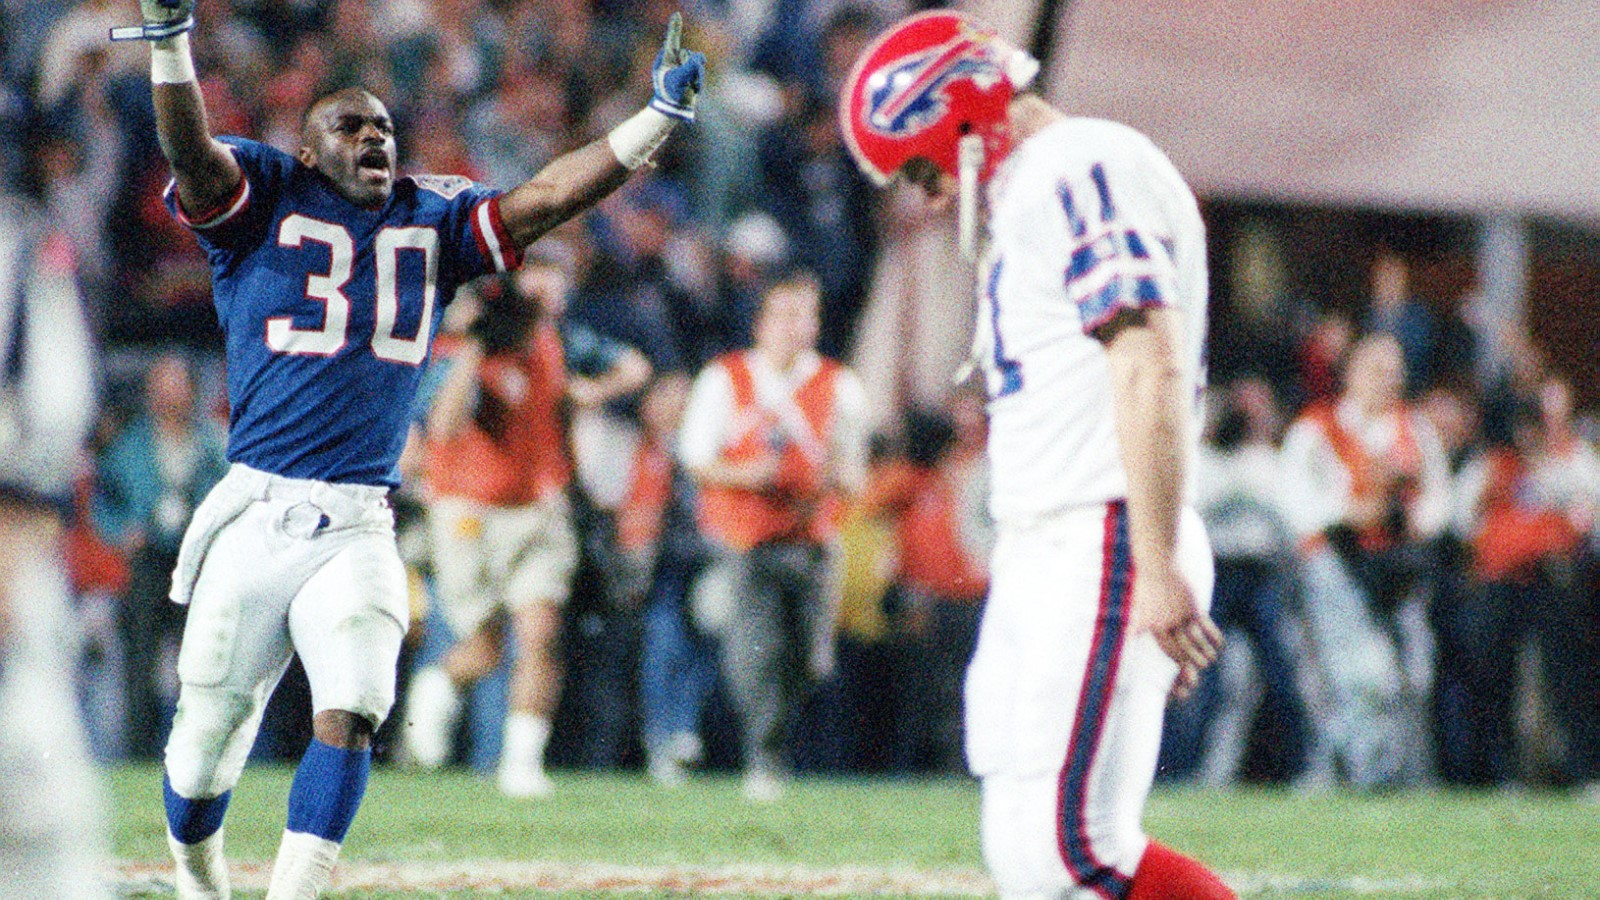 Scott Norwood walks off the field after missing a field goal that would have won Super Bowl XXV for the Bills. (James P. McCoy/Buffalo News)